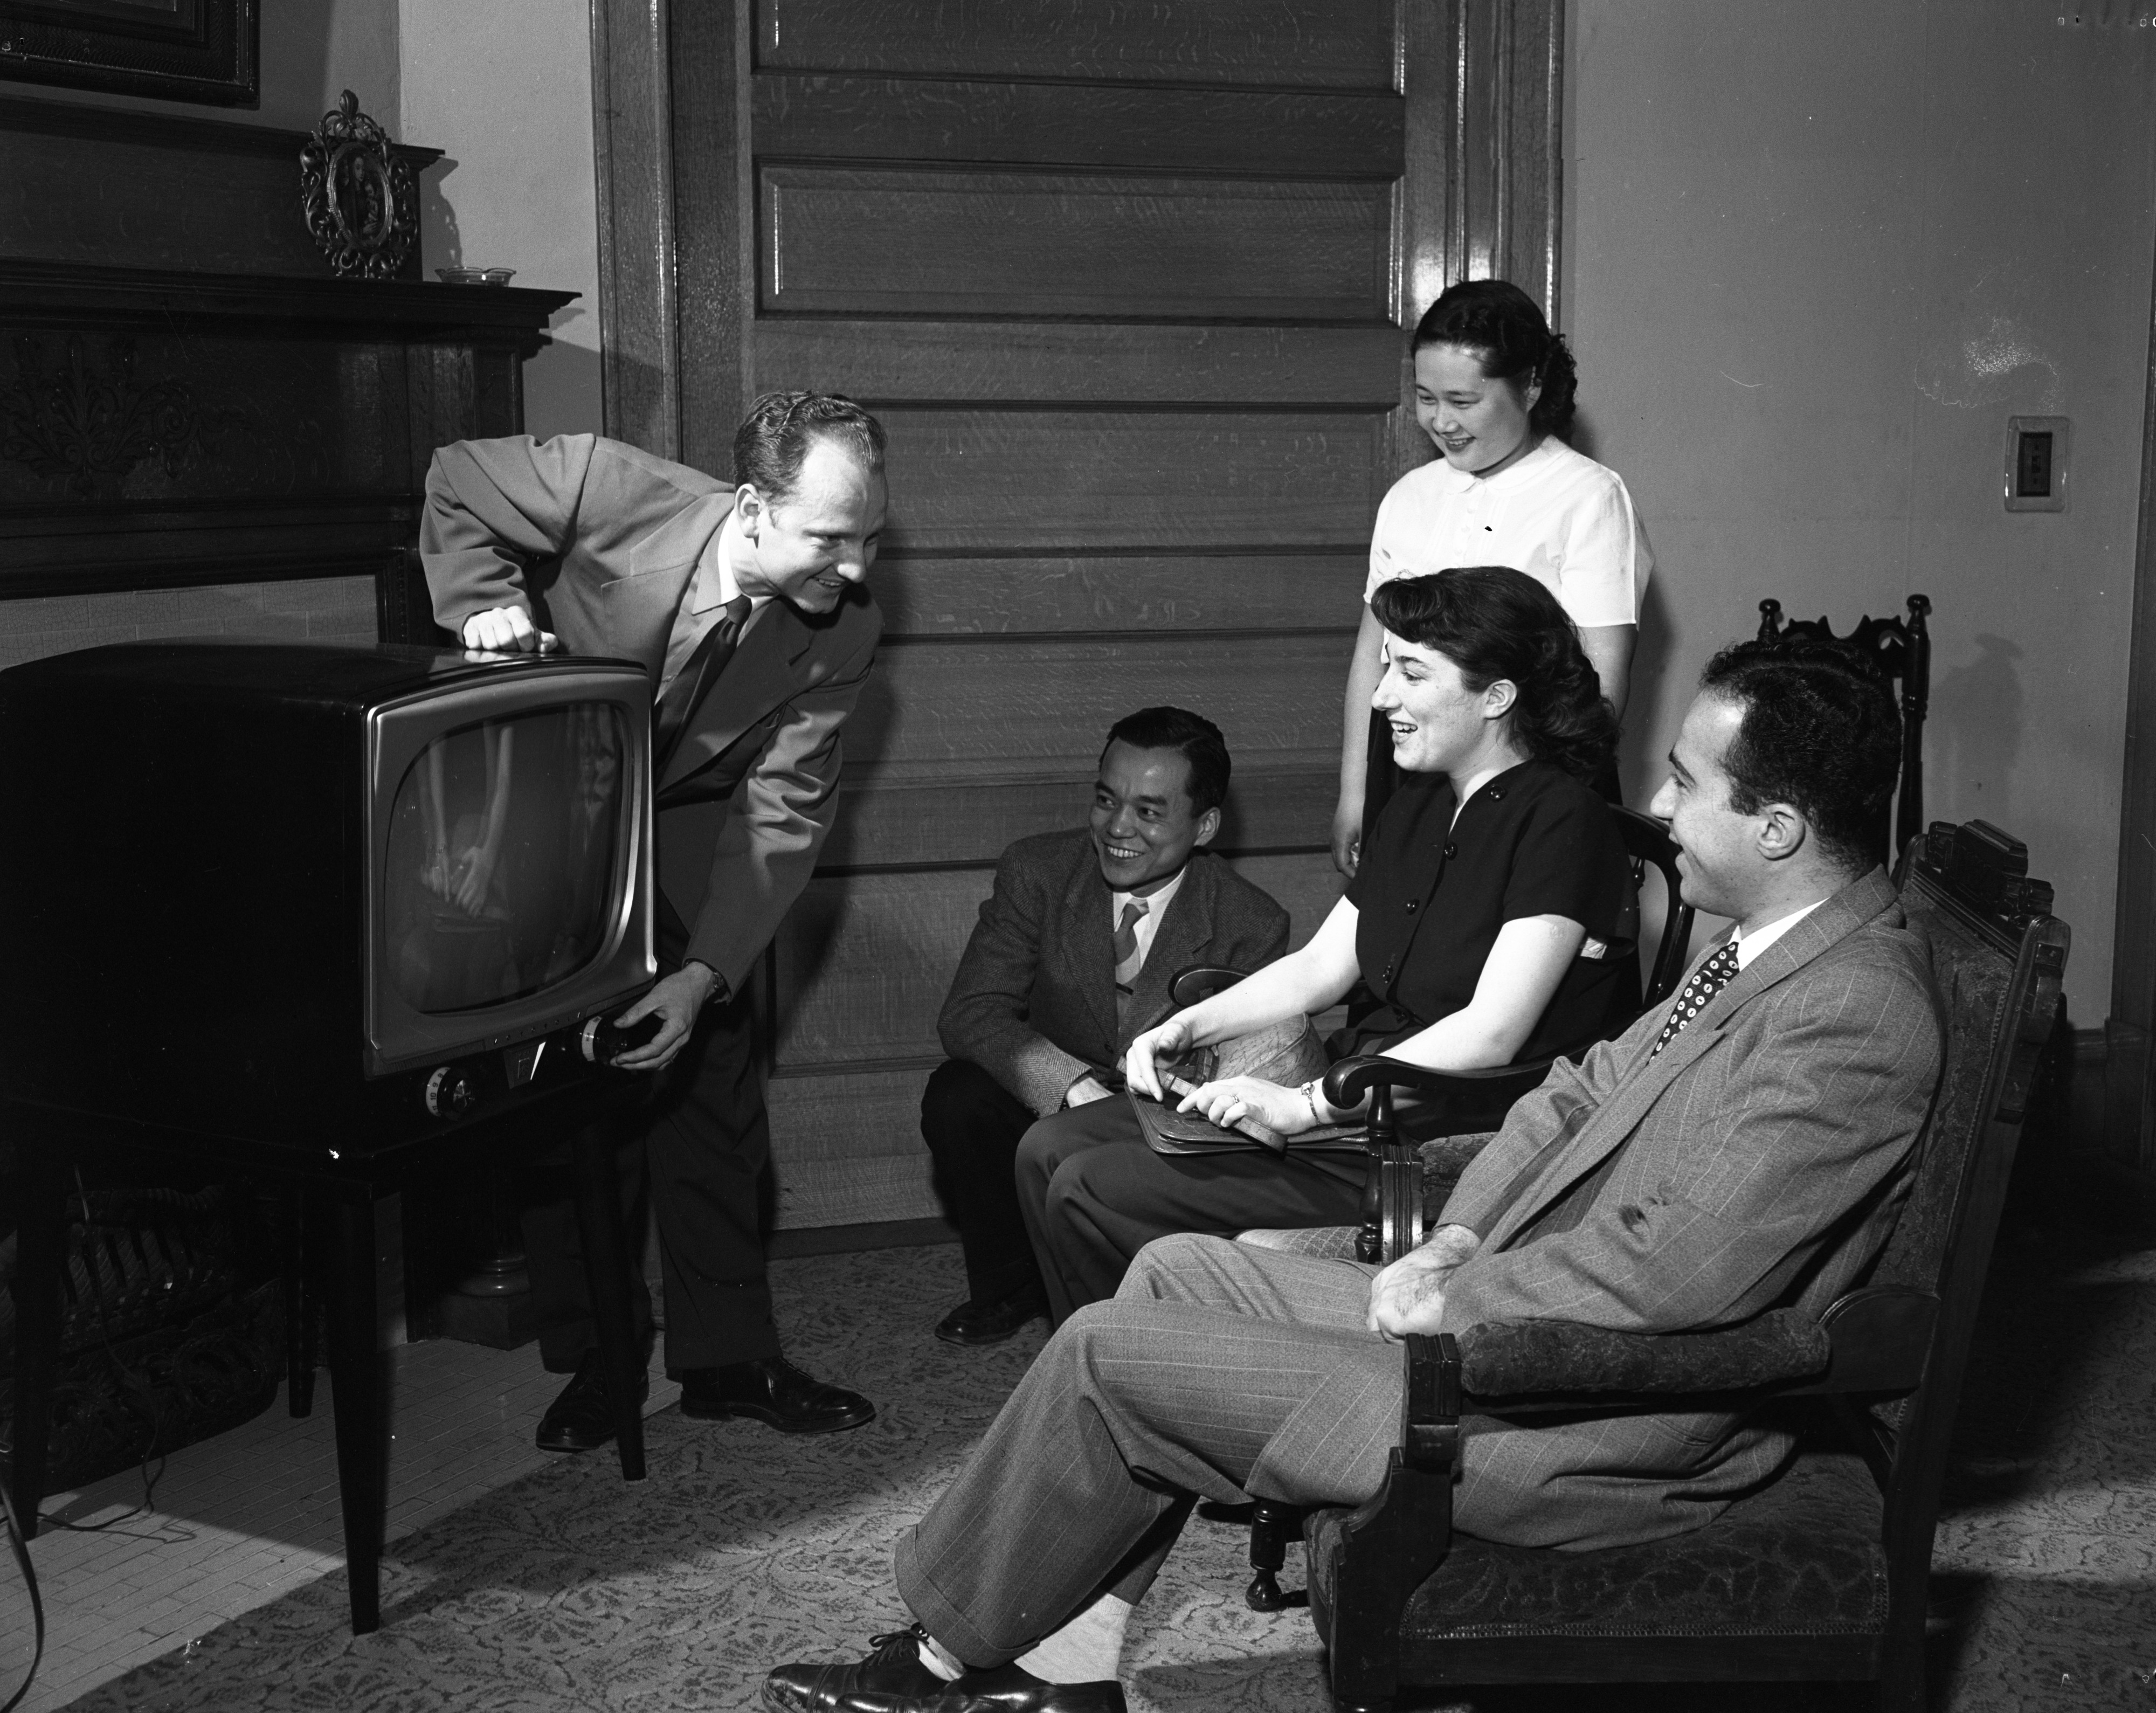 Students At UM's Pound House Receive New TV, February 1953 image